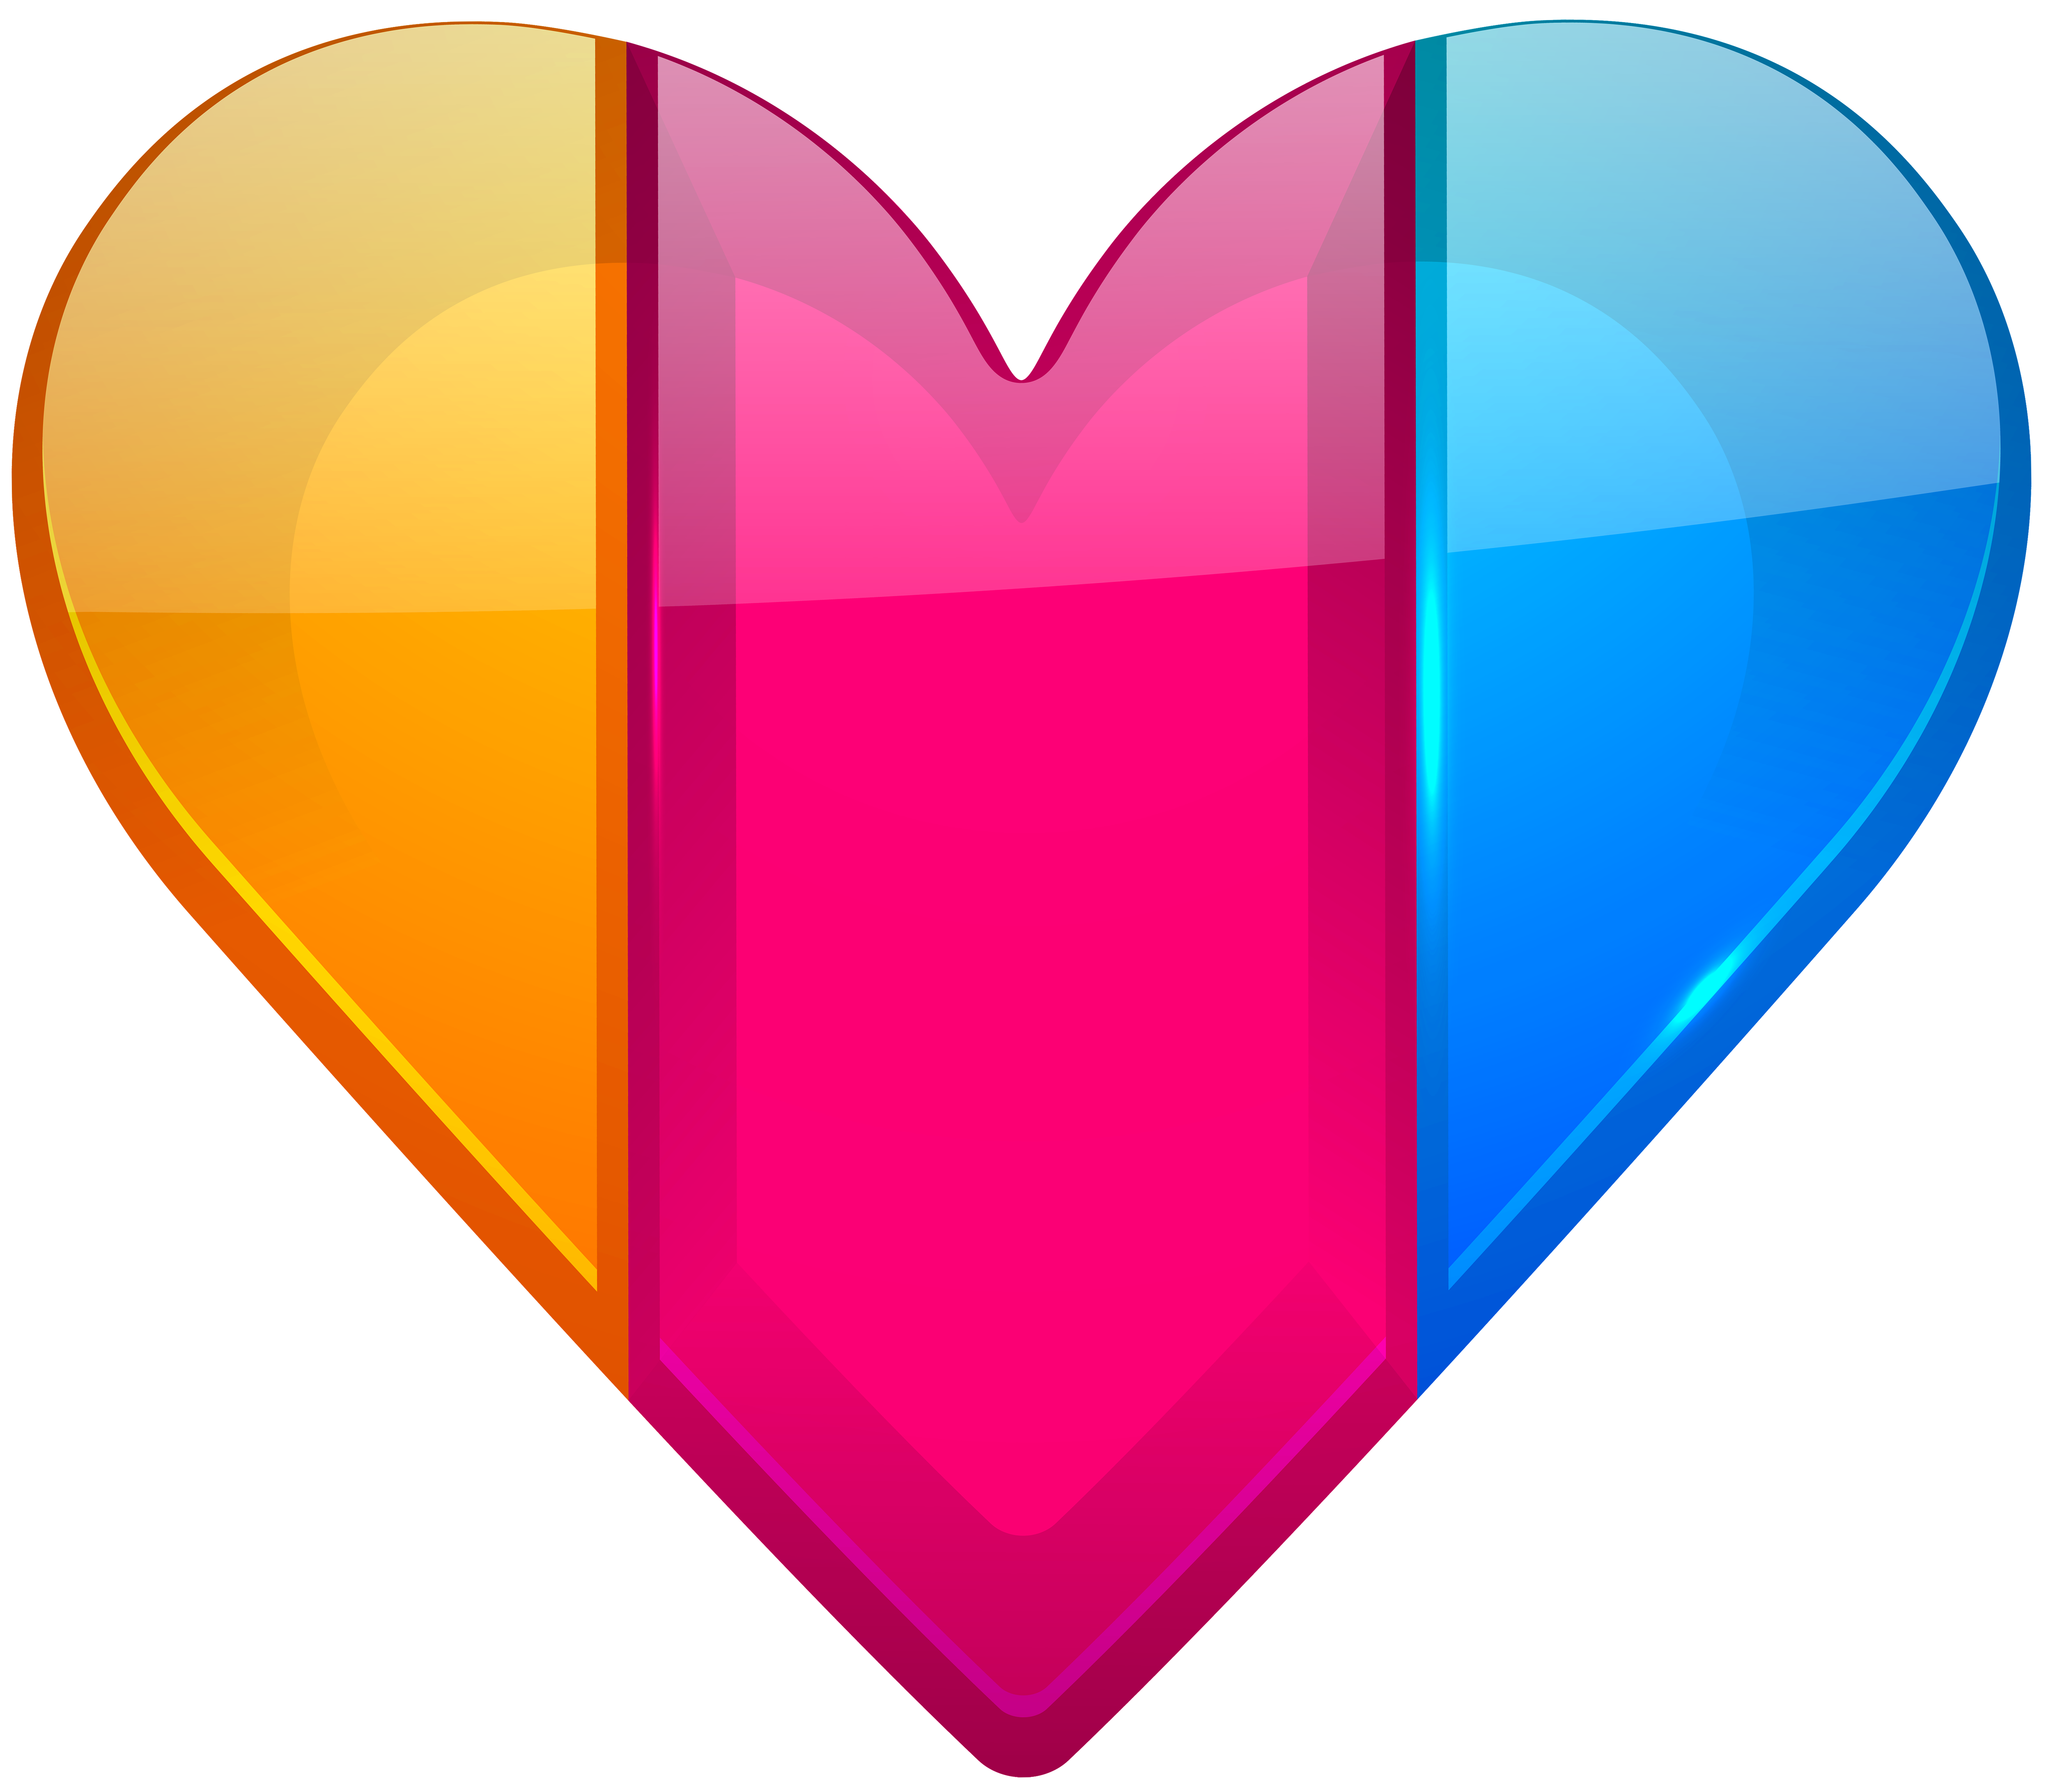 Colorful heart png best. Diamonds clipart coloured